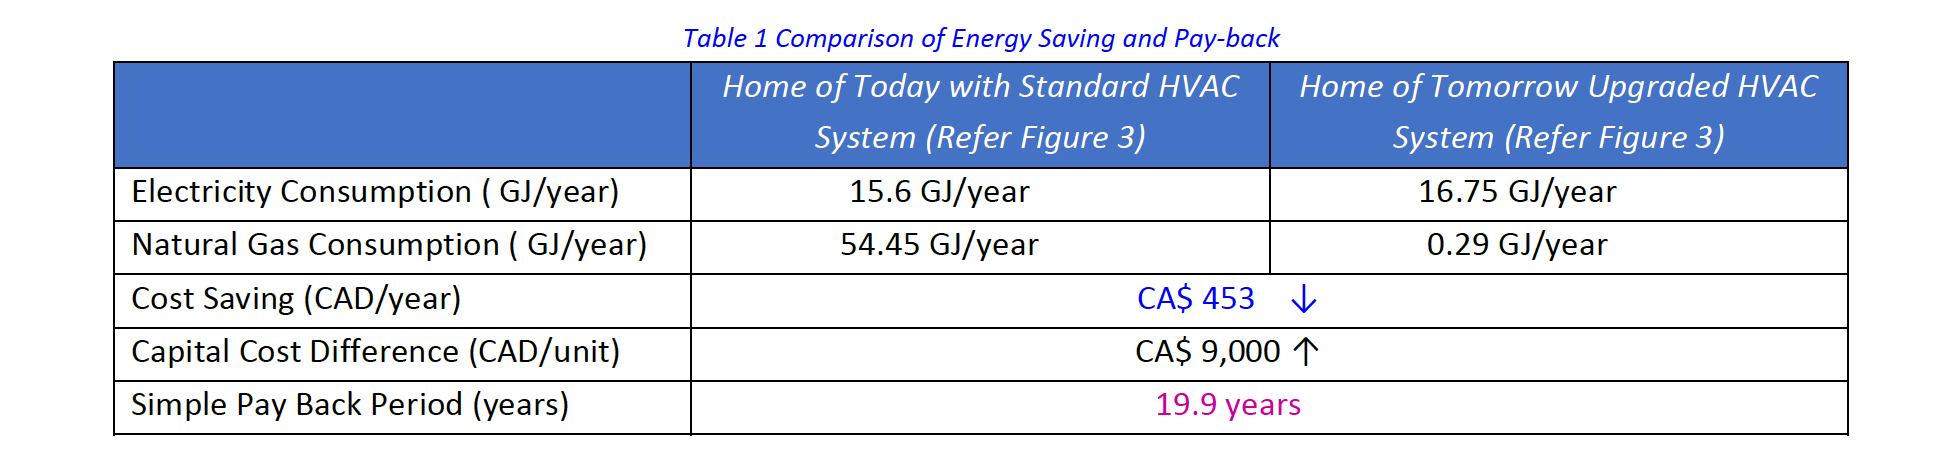 Table 1 Comparison of Energy Saving and Pay-back